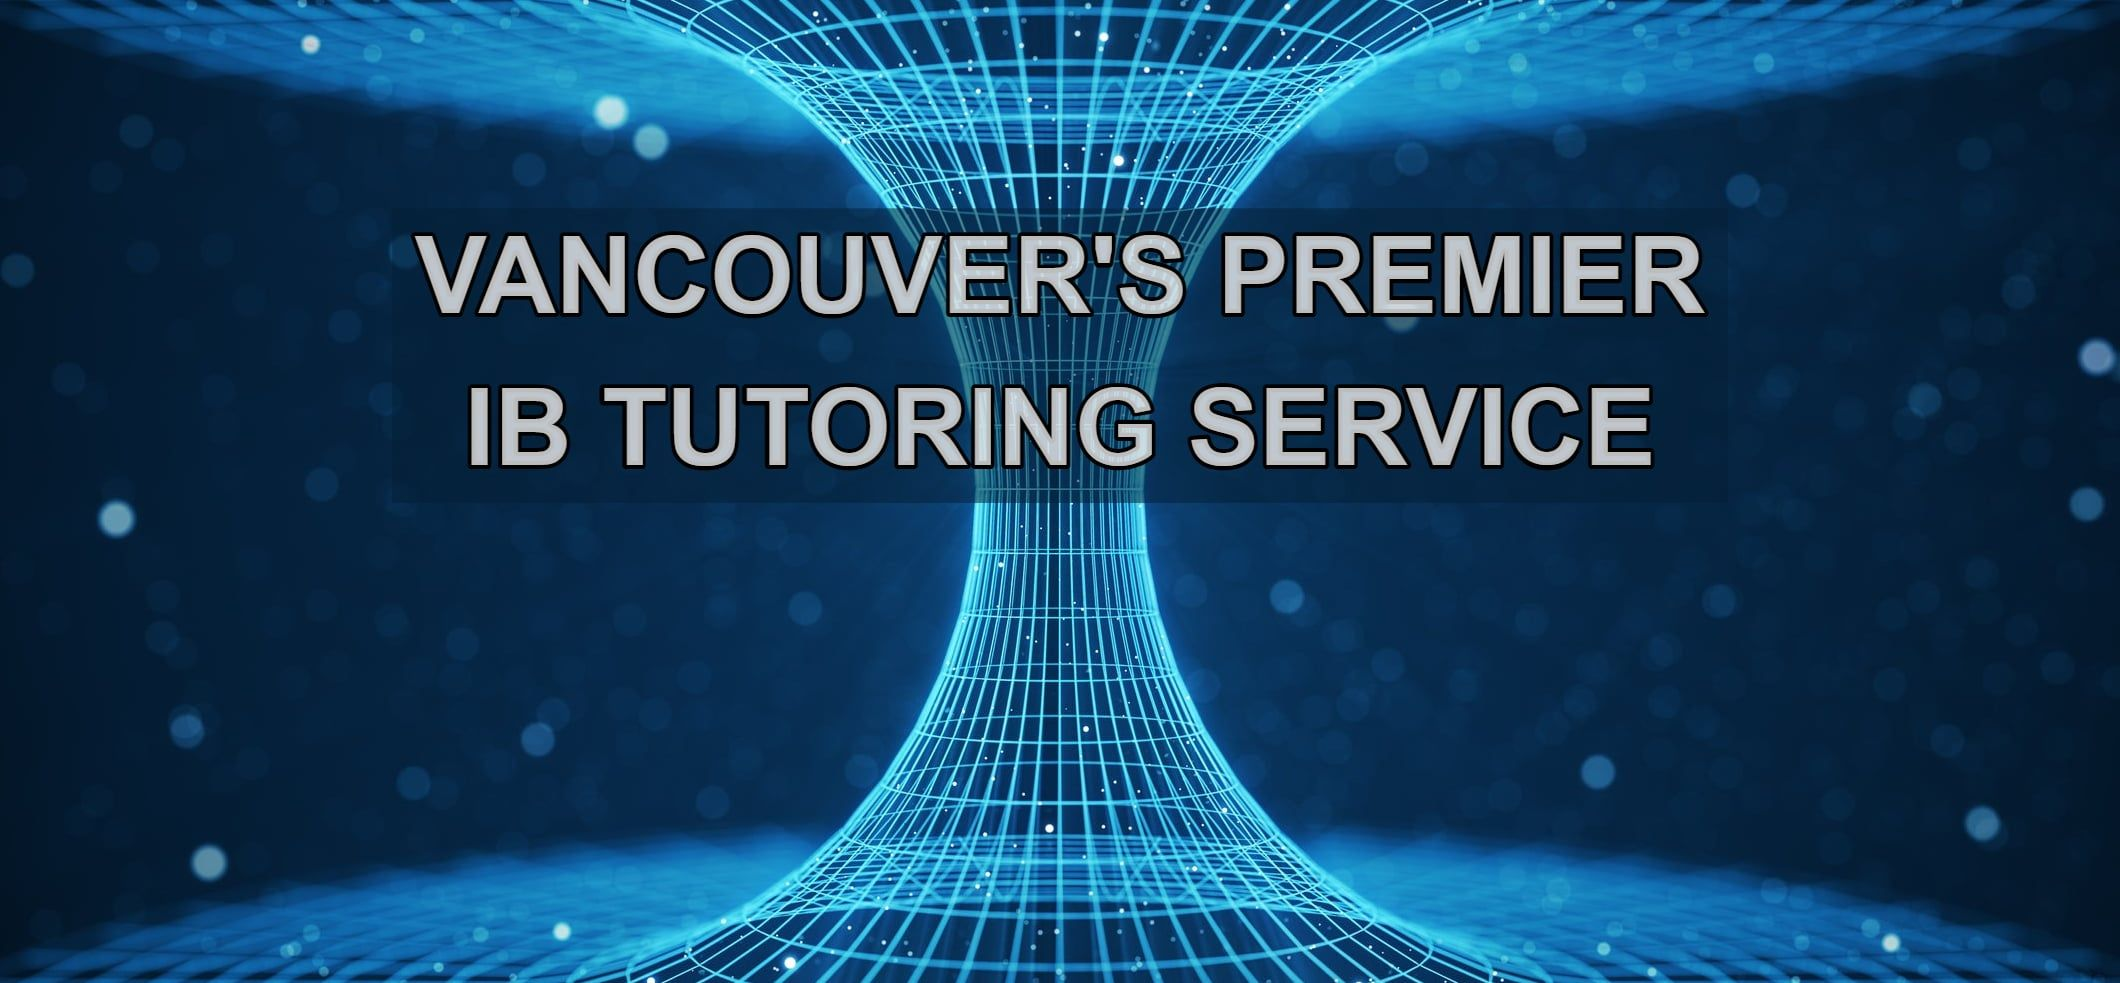 IB PHYSICS TUTORING SERVICE IN VANCOUVER WITH HACK YOUR COURSE